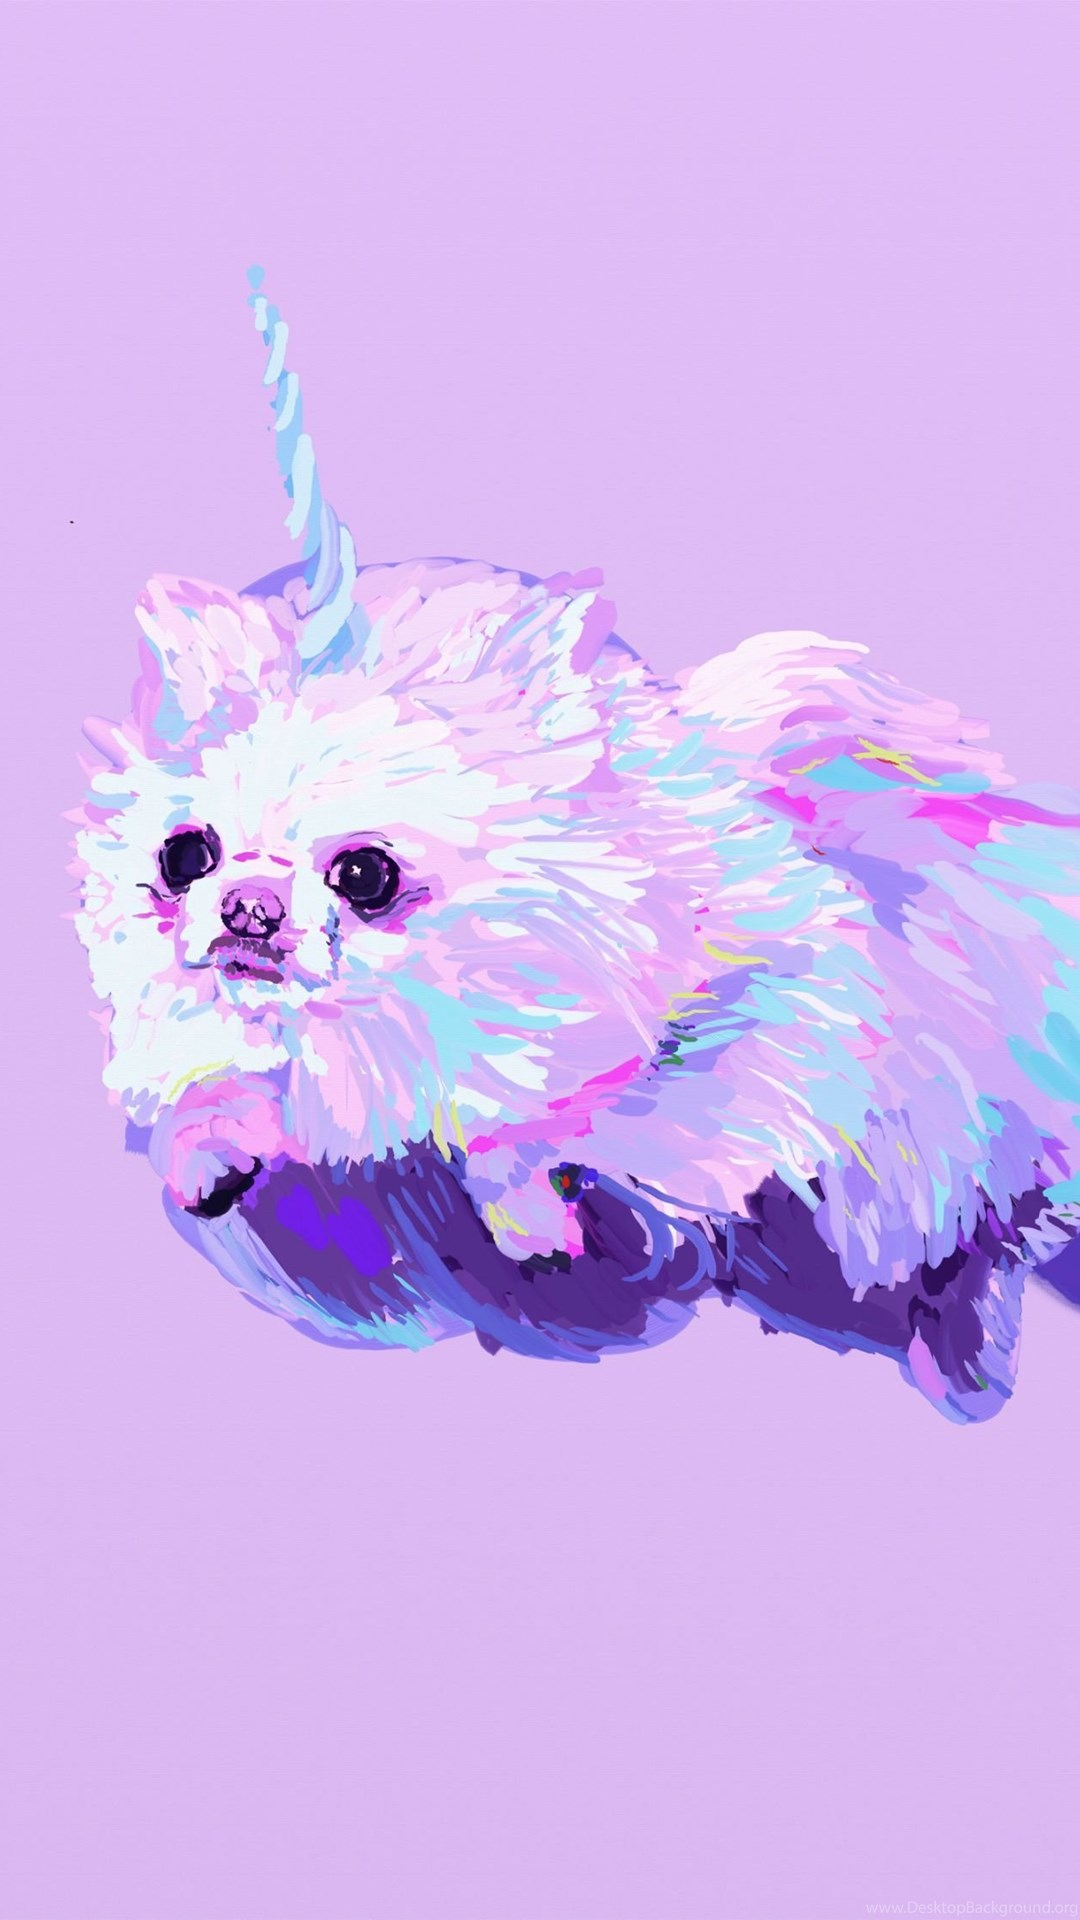 Pomeranian Dog Dogs Fantasy Unicorn Wallpapers Desktop